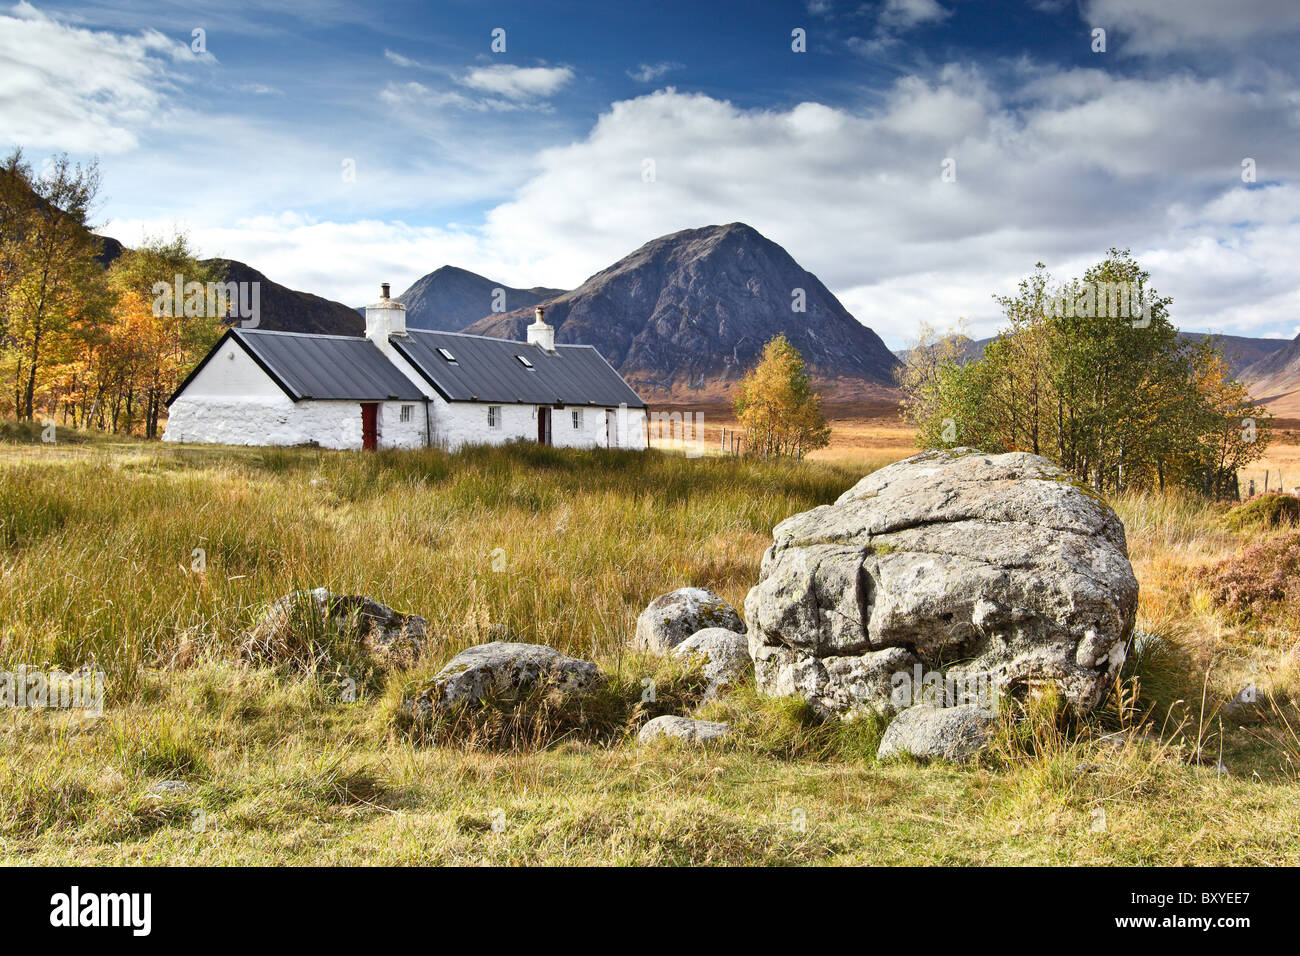 Blackrock cottage in Autumn with Stob Dearg and Buachaille Etive Mor in background, Rannoch Moor, near Glencoe, - Stock Image